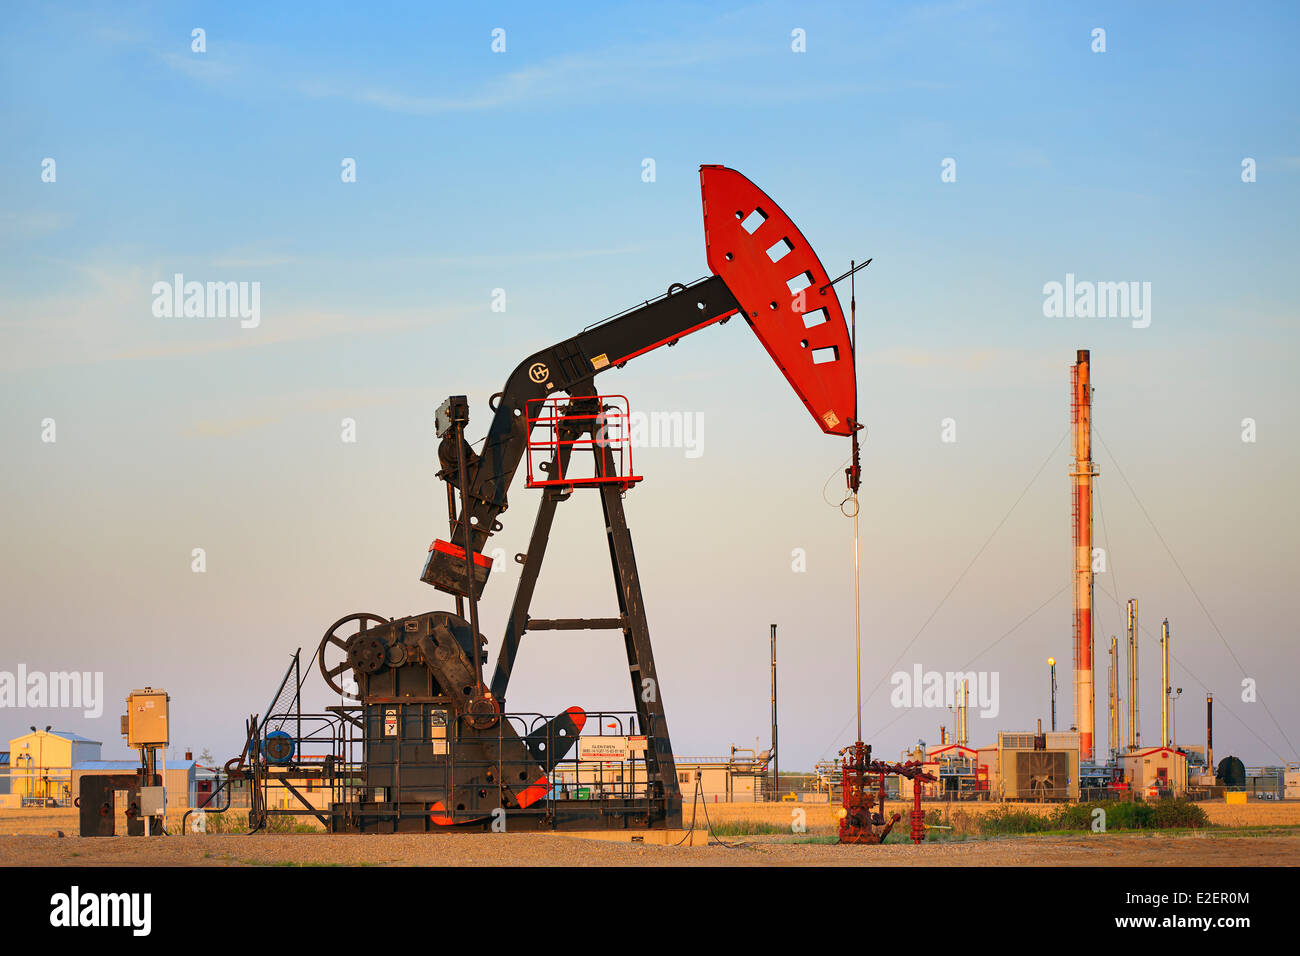 Oil well pump jack, with Liquid Natural Gas plant in background, near Estevan, Saskatchewan, Canada - Stock Image